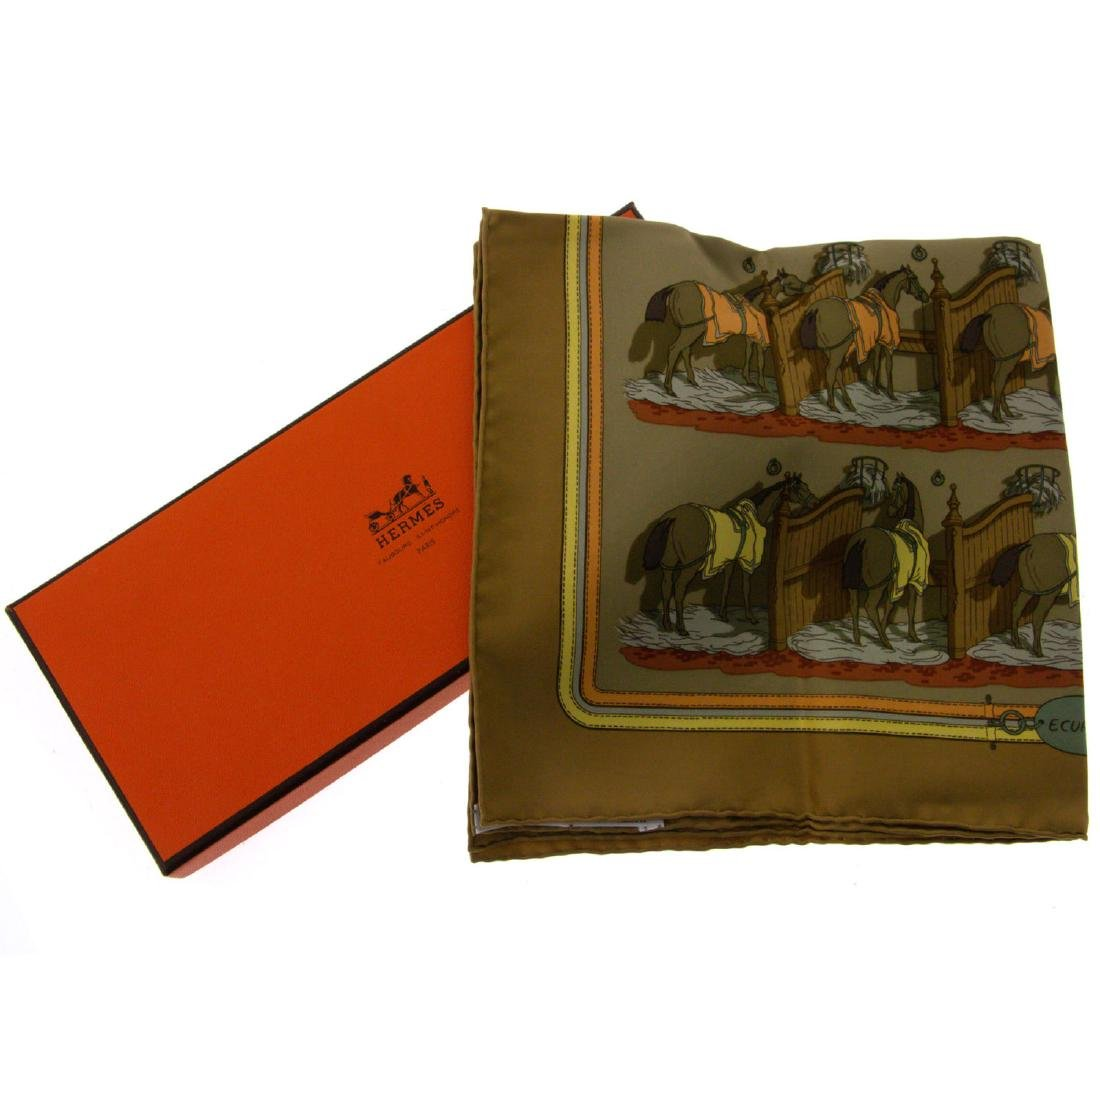 Hermes Handkerchief in the Original Box.